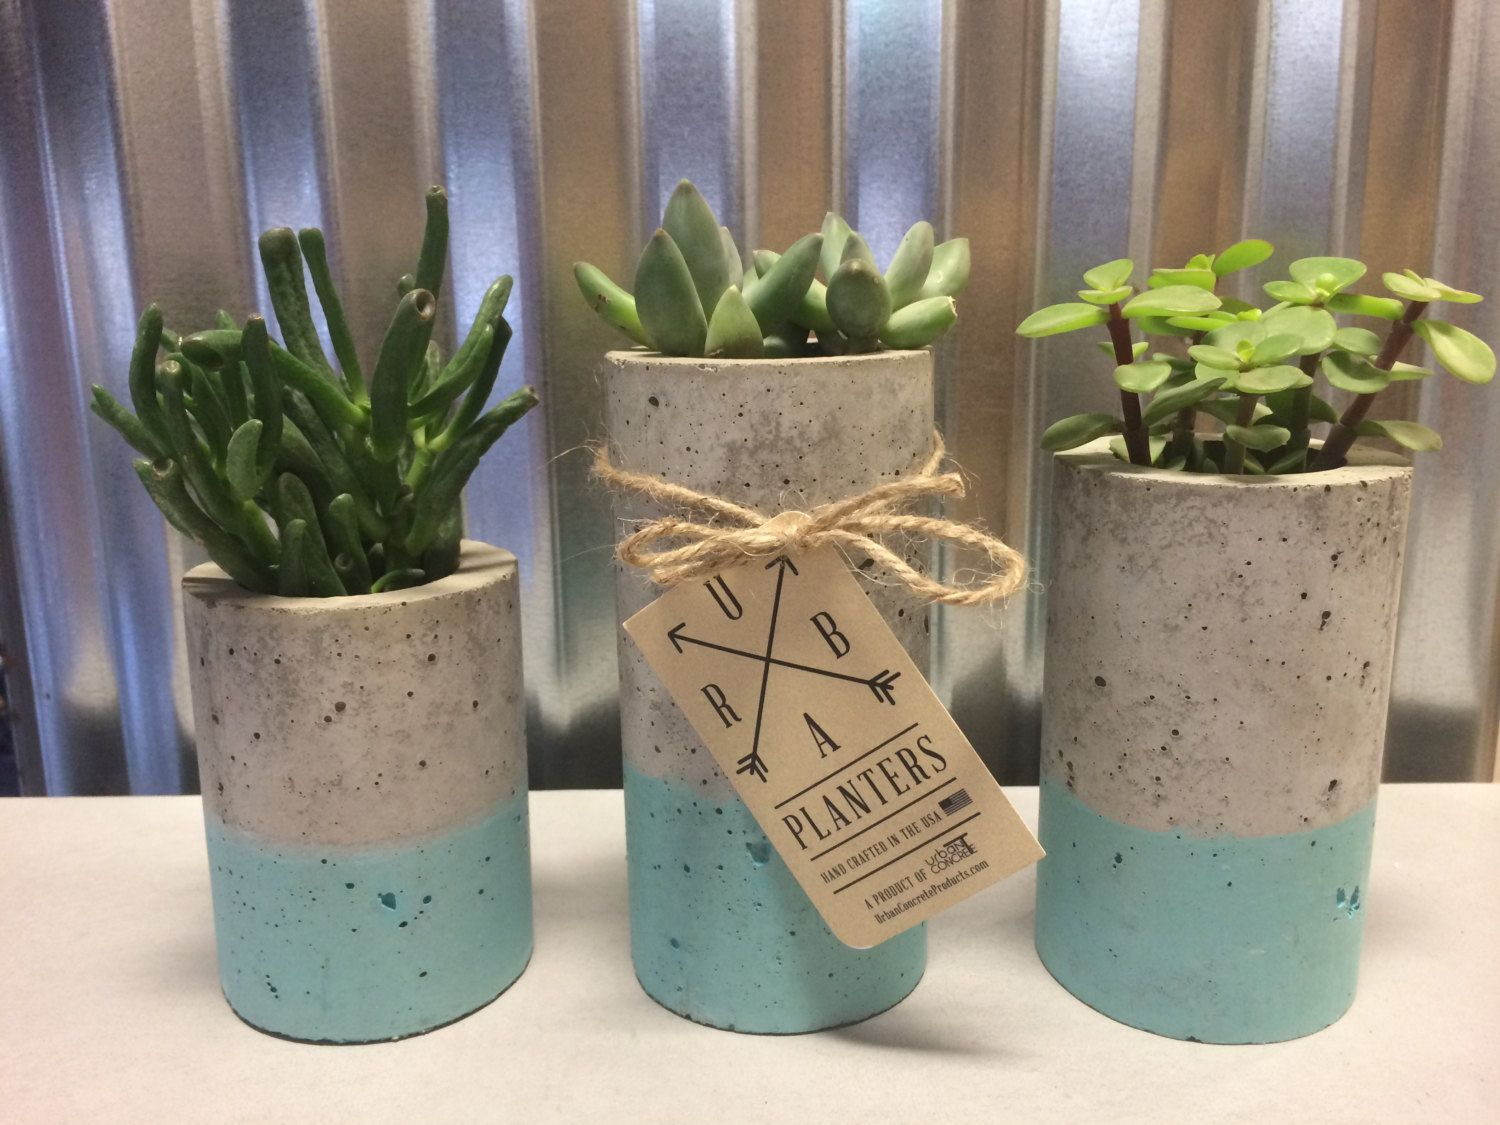 Succulent Planters Wholesale These Concrete Planters Are Designed For Succulents Or Air